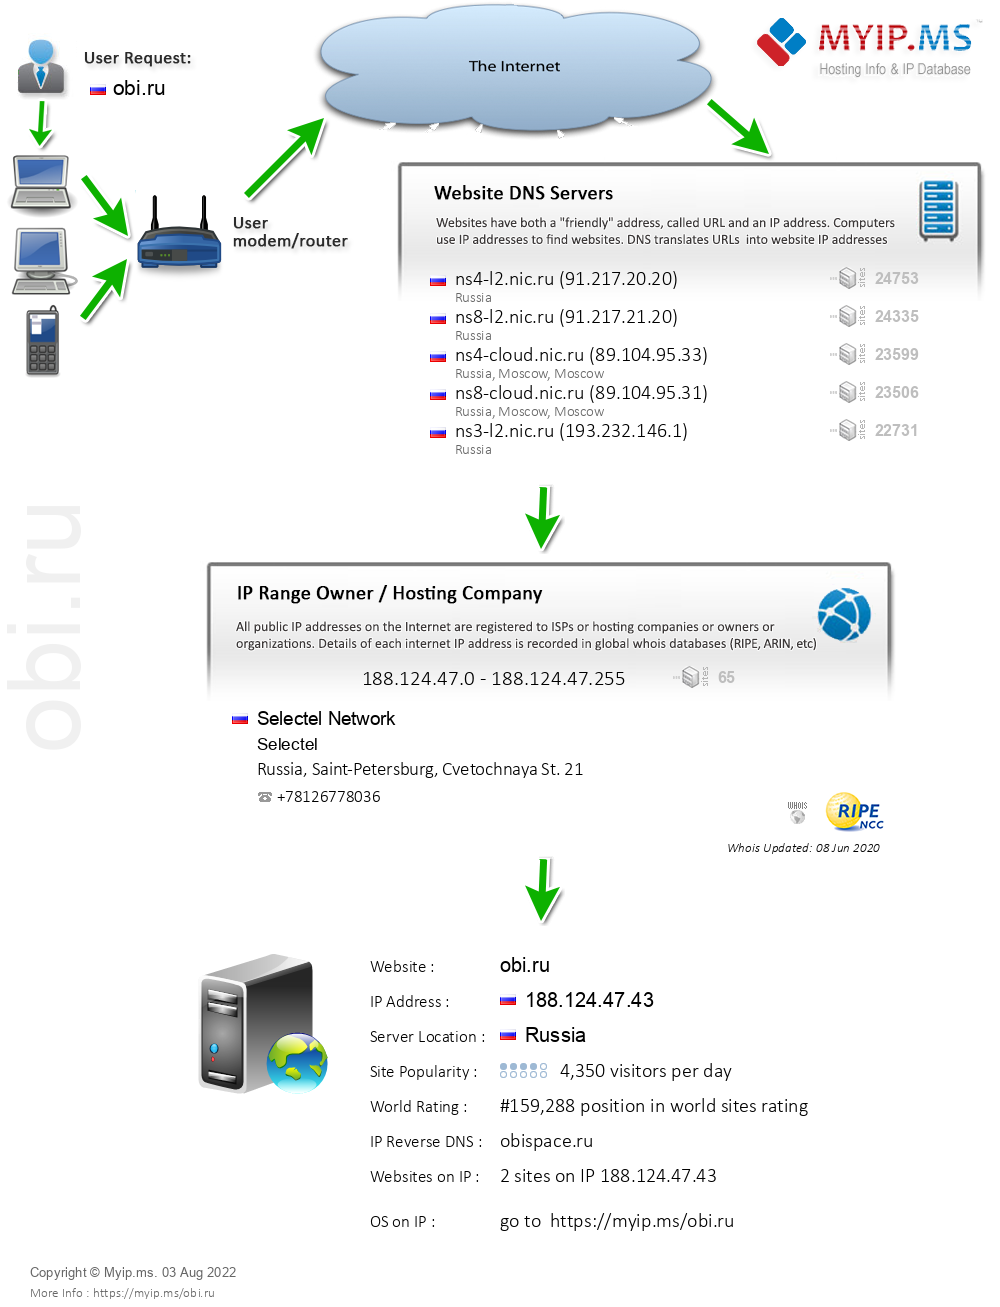 Obi.ru - Website Hosting Visual IP Diagram